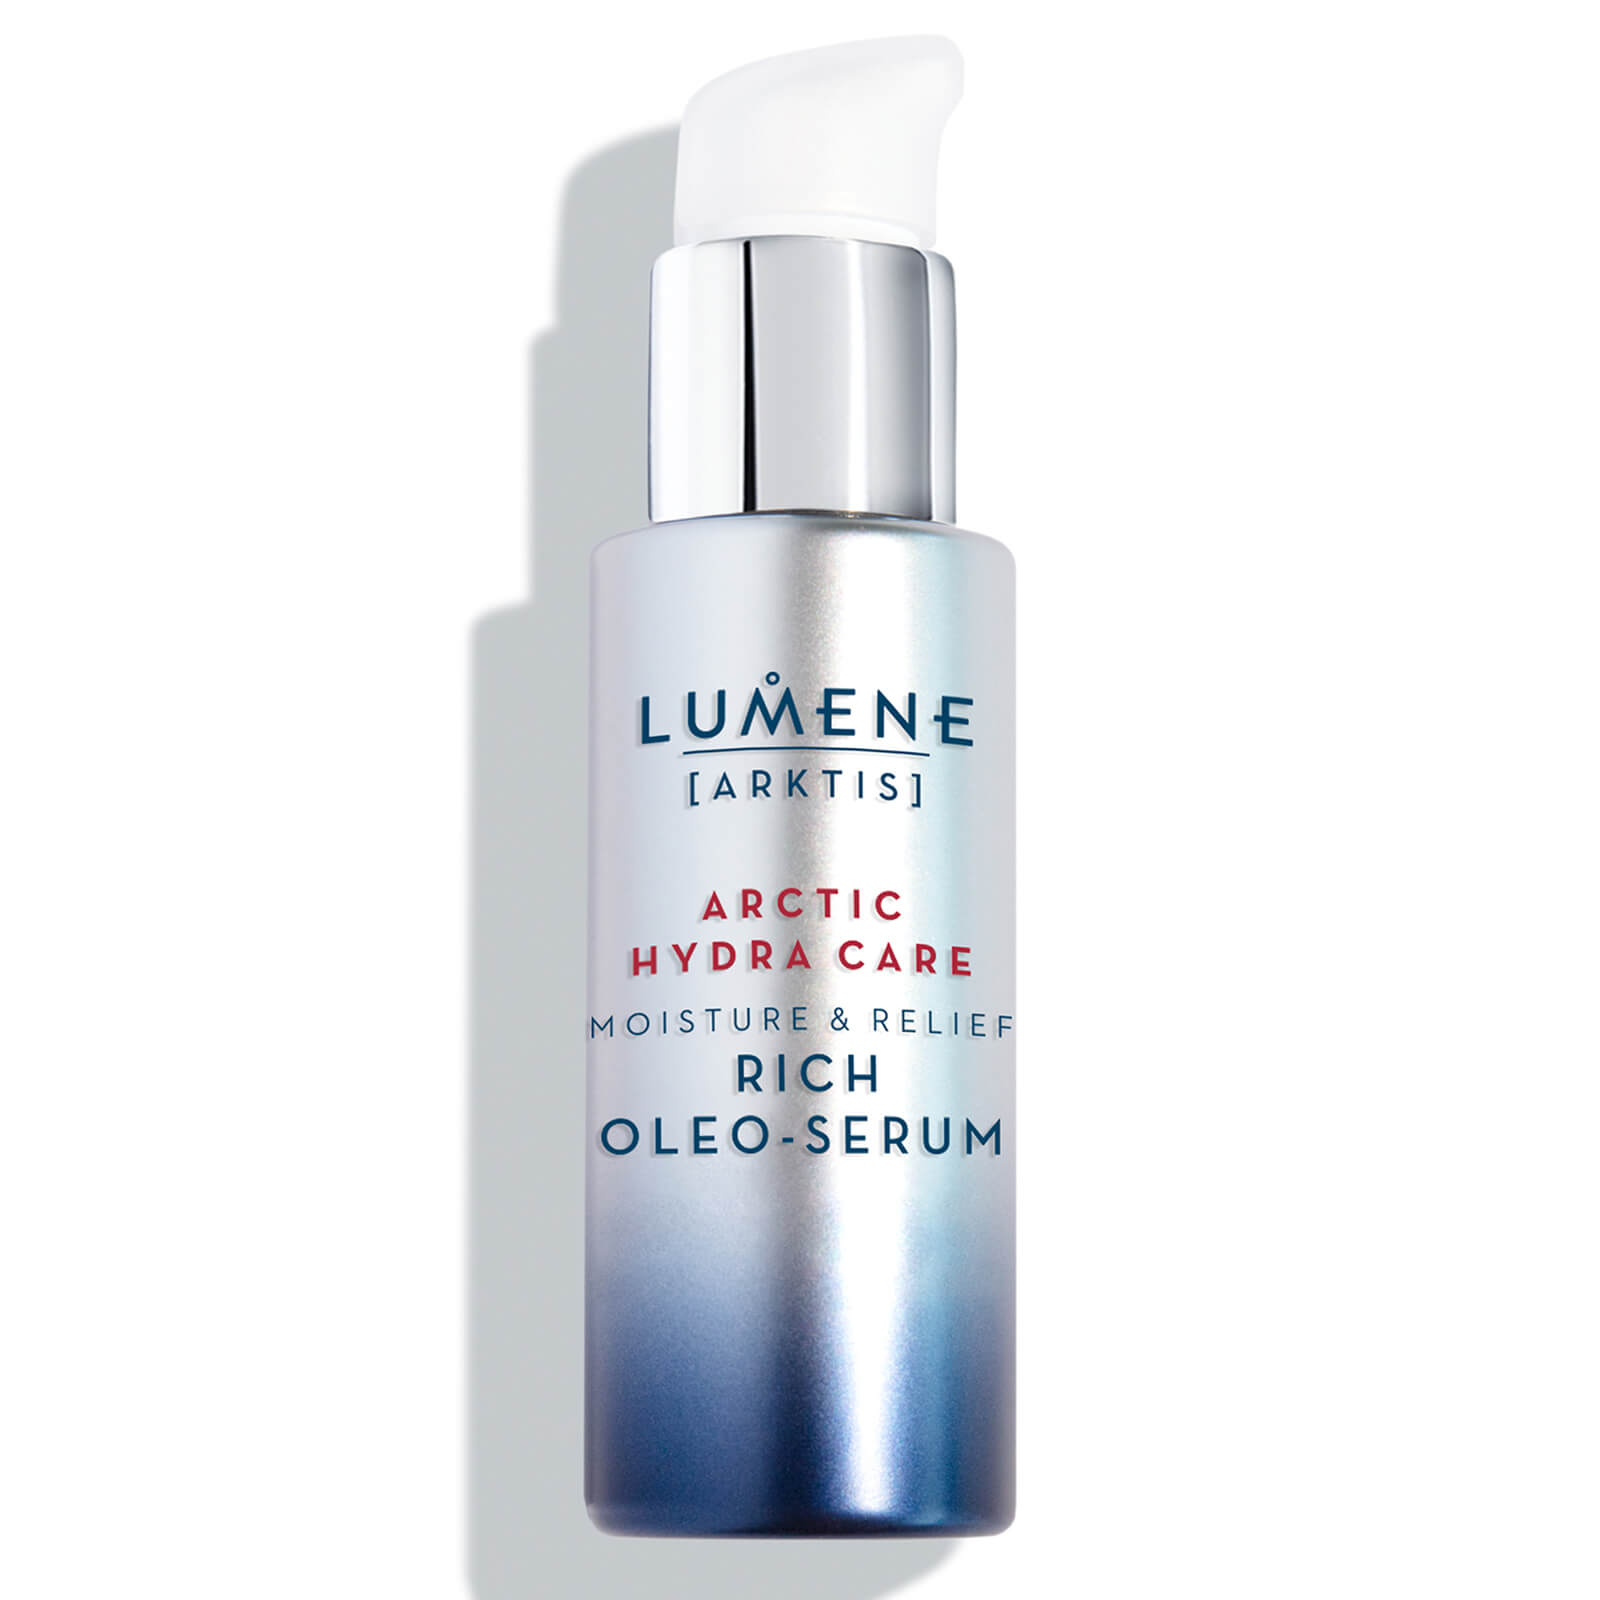 Купить Lumene Arctic Hydra Care [Arktis] Moisture & Relief Rich Oleo-Serum 30ml